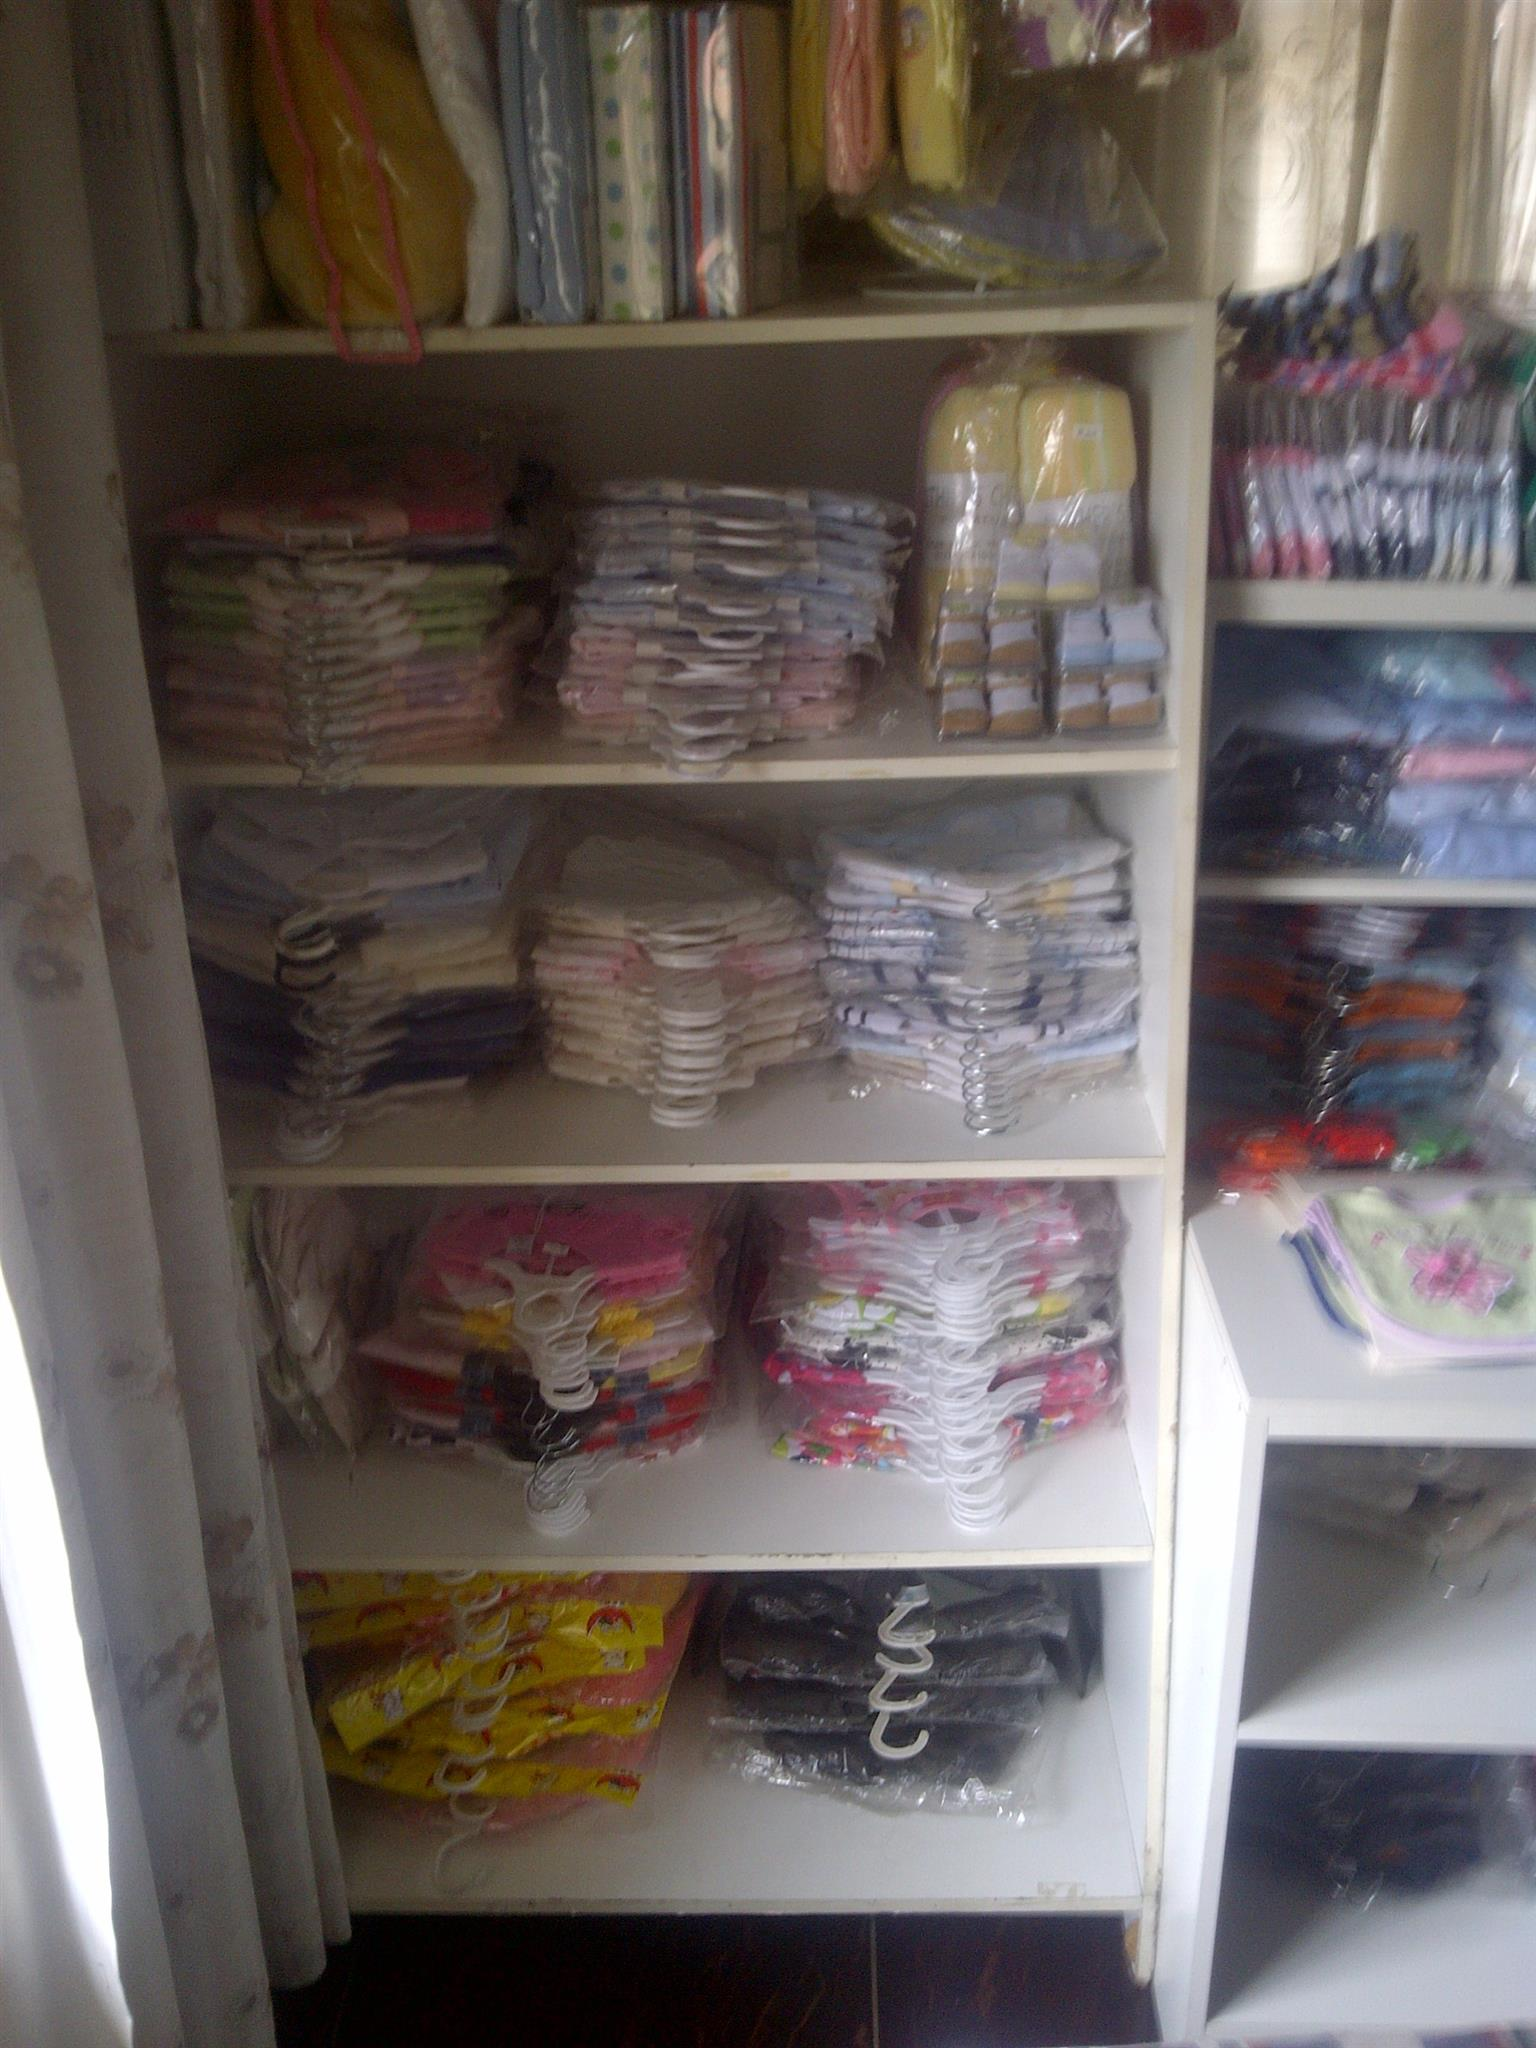 Fixtures and fittings for a clothing retailer - Urgent Sale